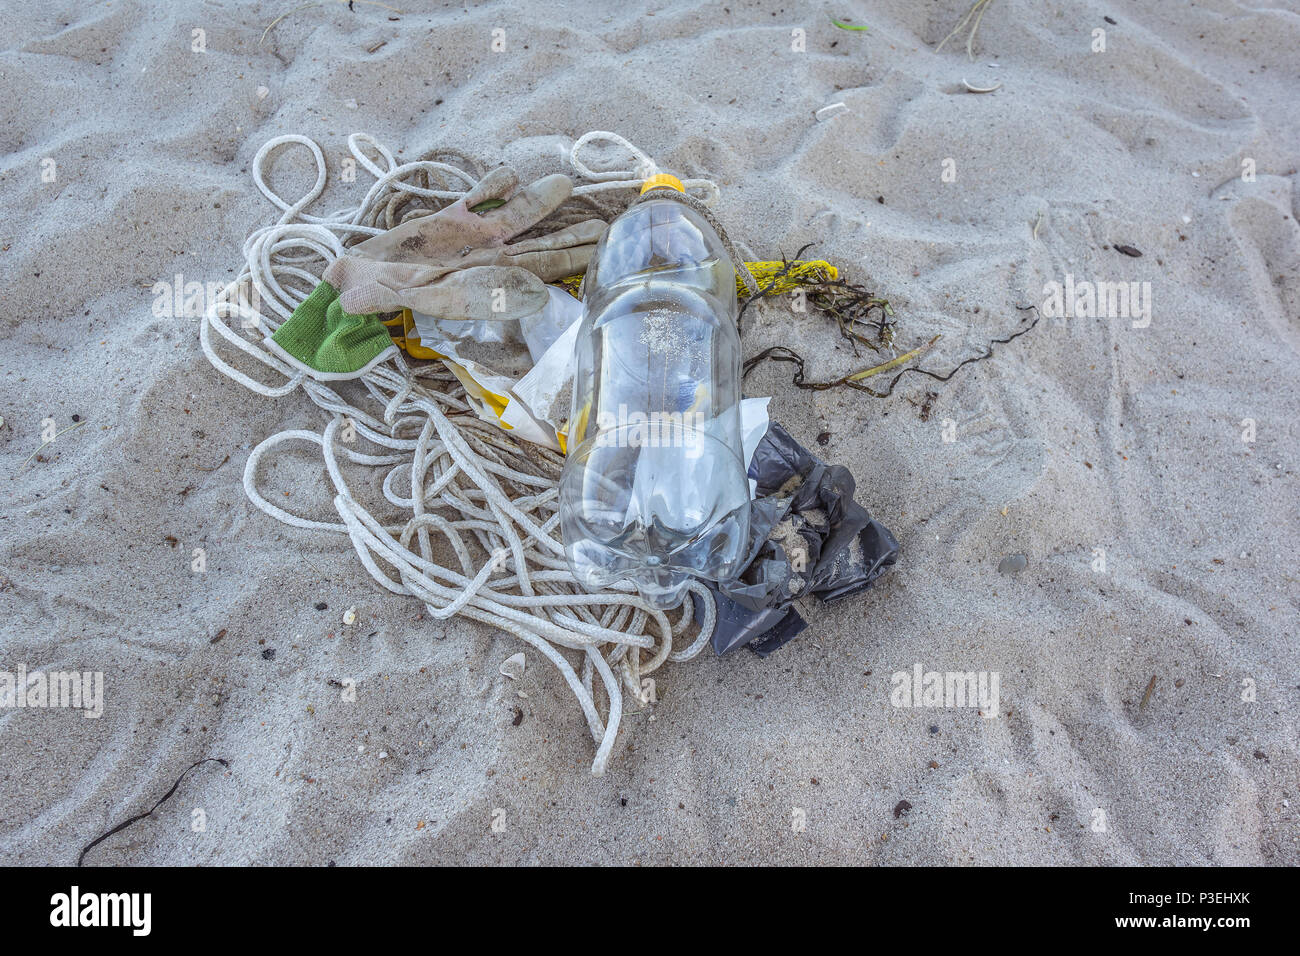 A plastic bottle and other litter on the sand, a closeup of a polluted beach, Vejle, Denmark, June 6, 2018 - Stock Image